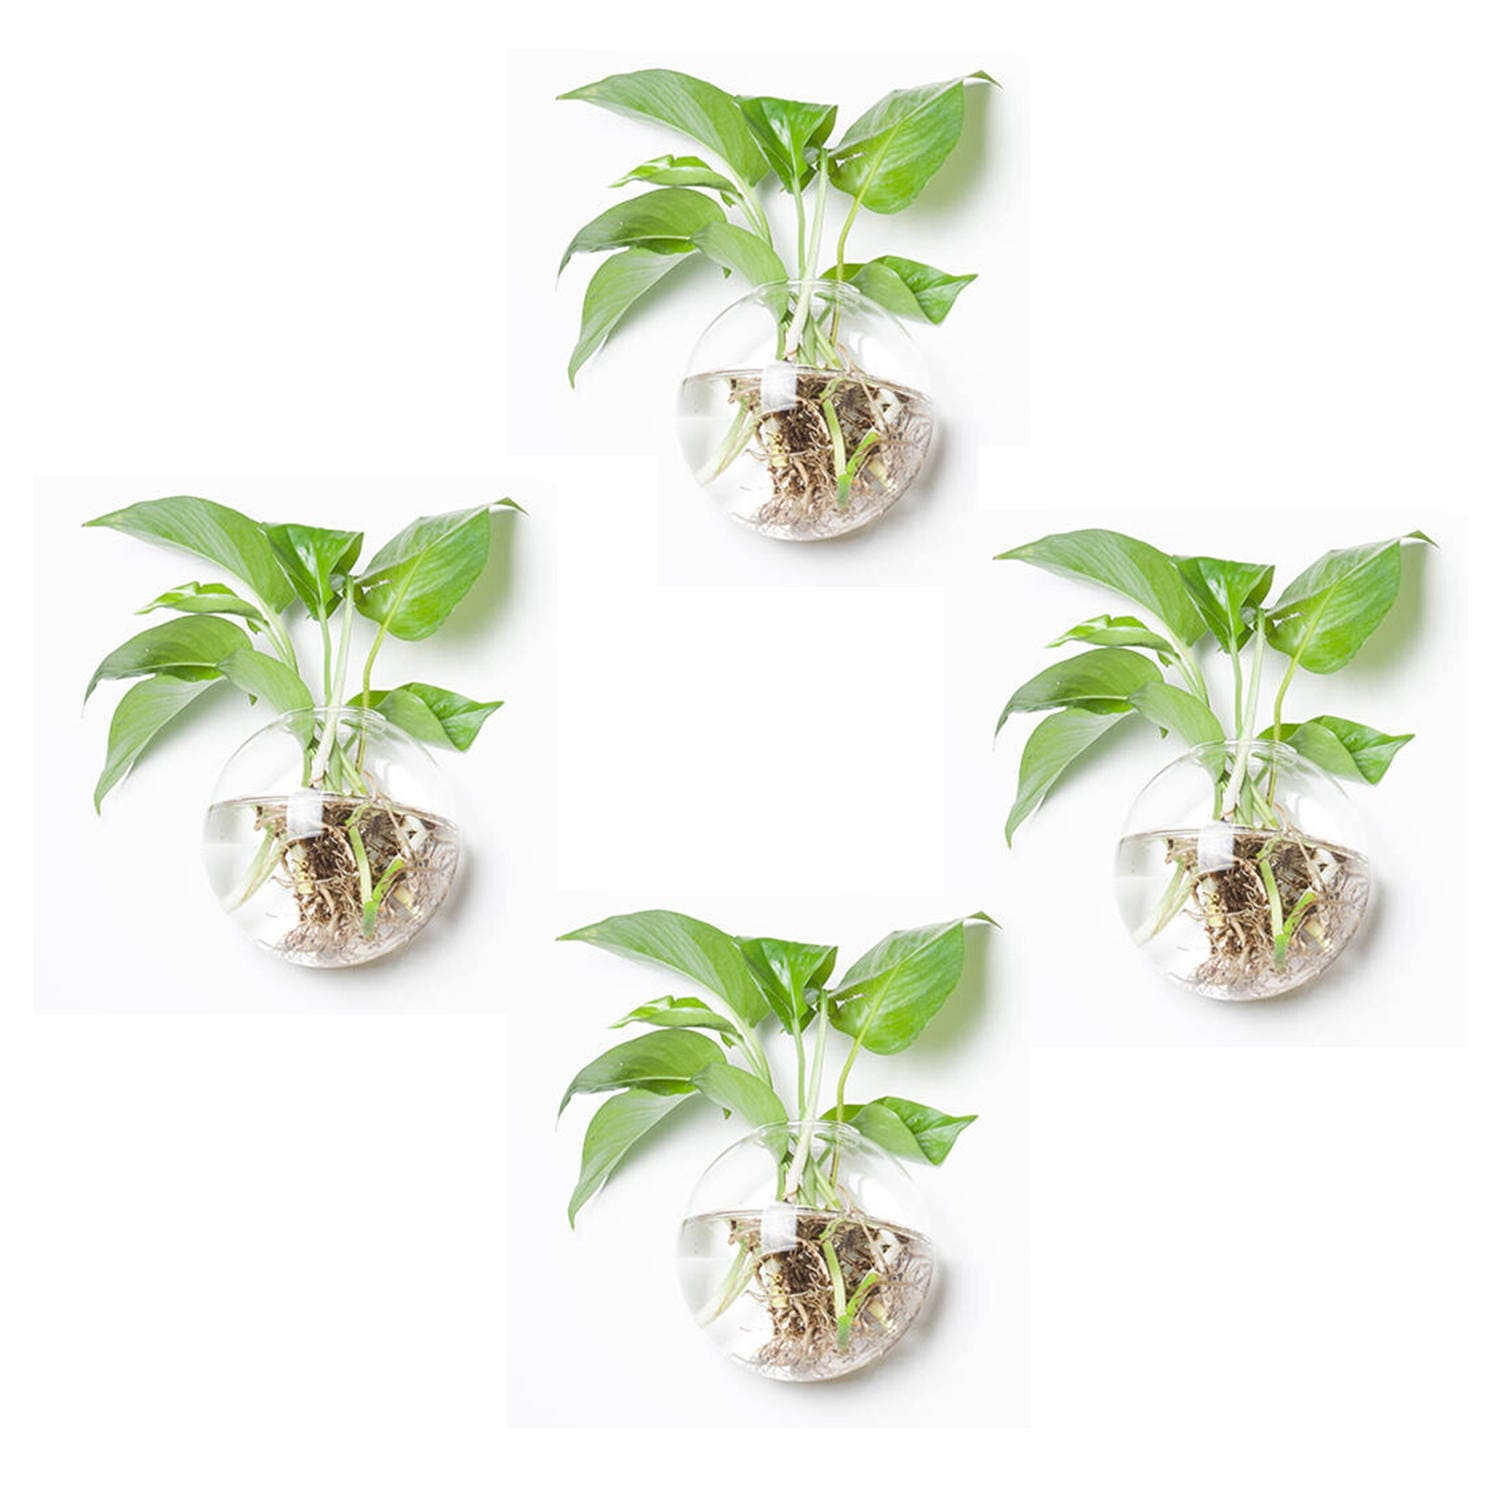 SALE Set of 4 wall bubble terrariums wall hanging planter indoor wall mounted vase for living home decor DIY plants garden supply